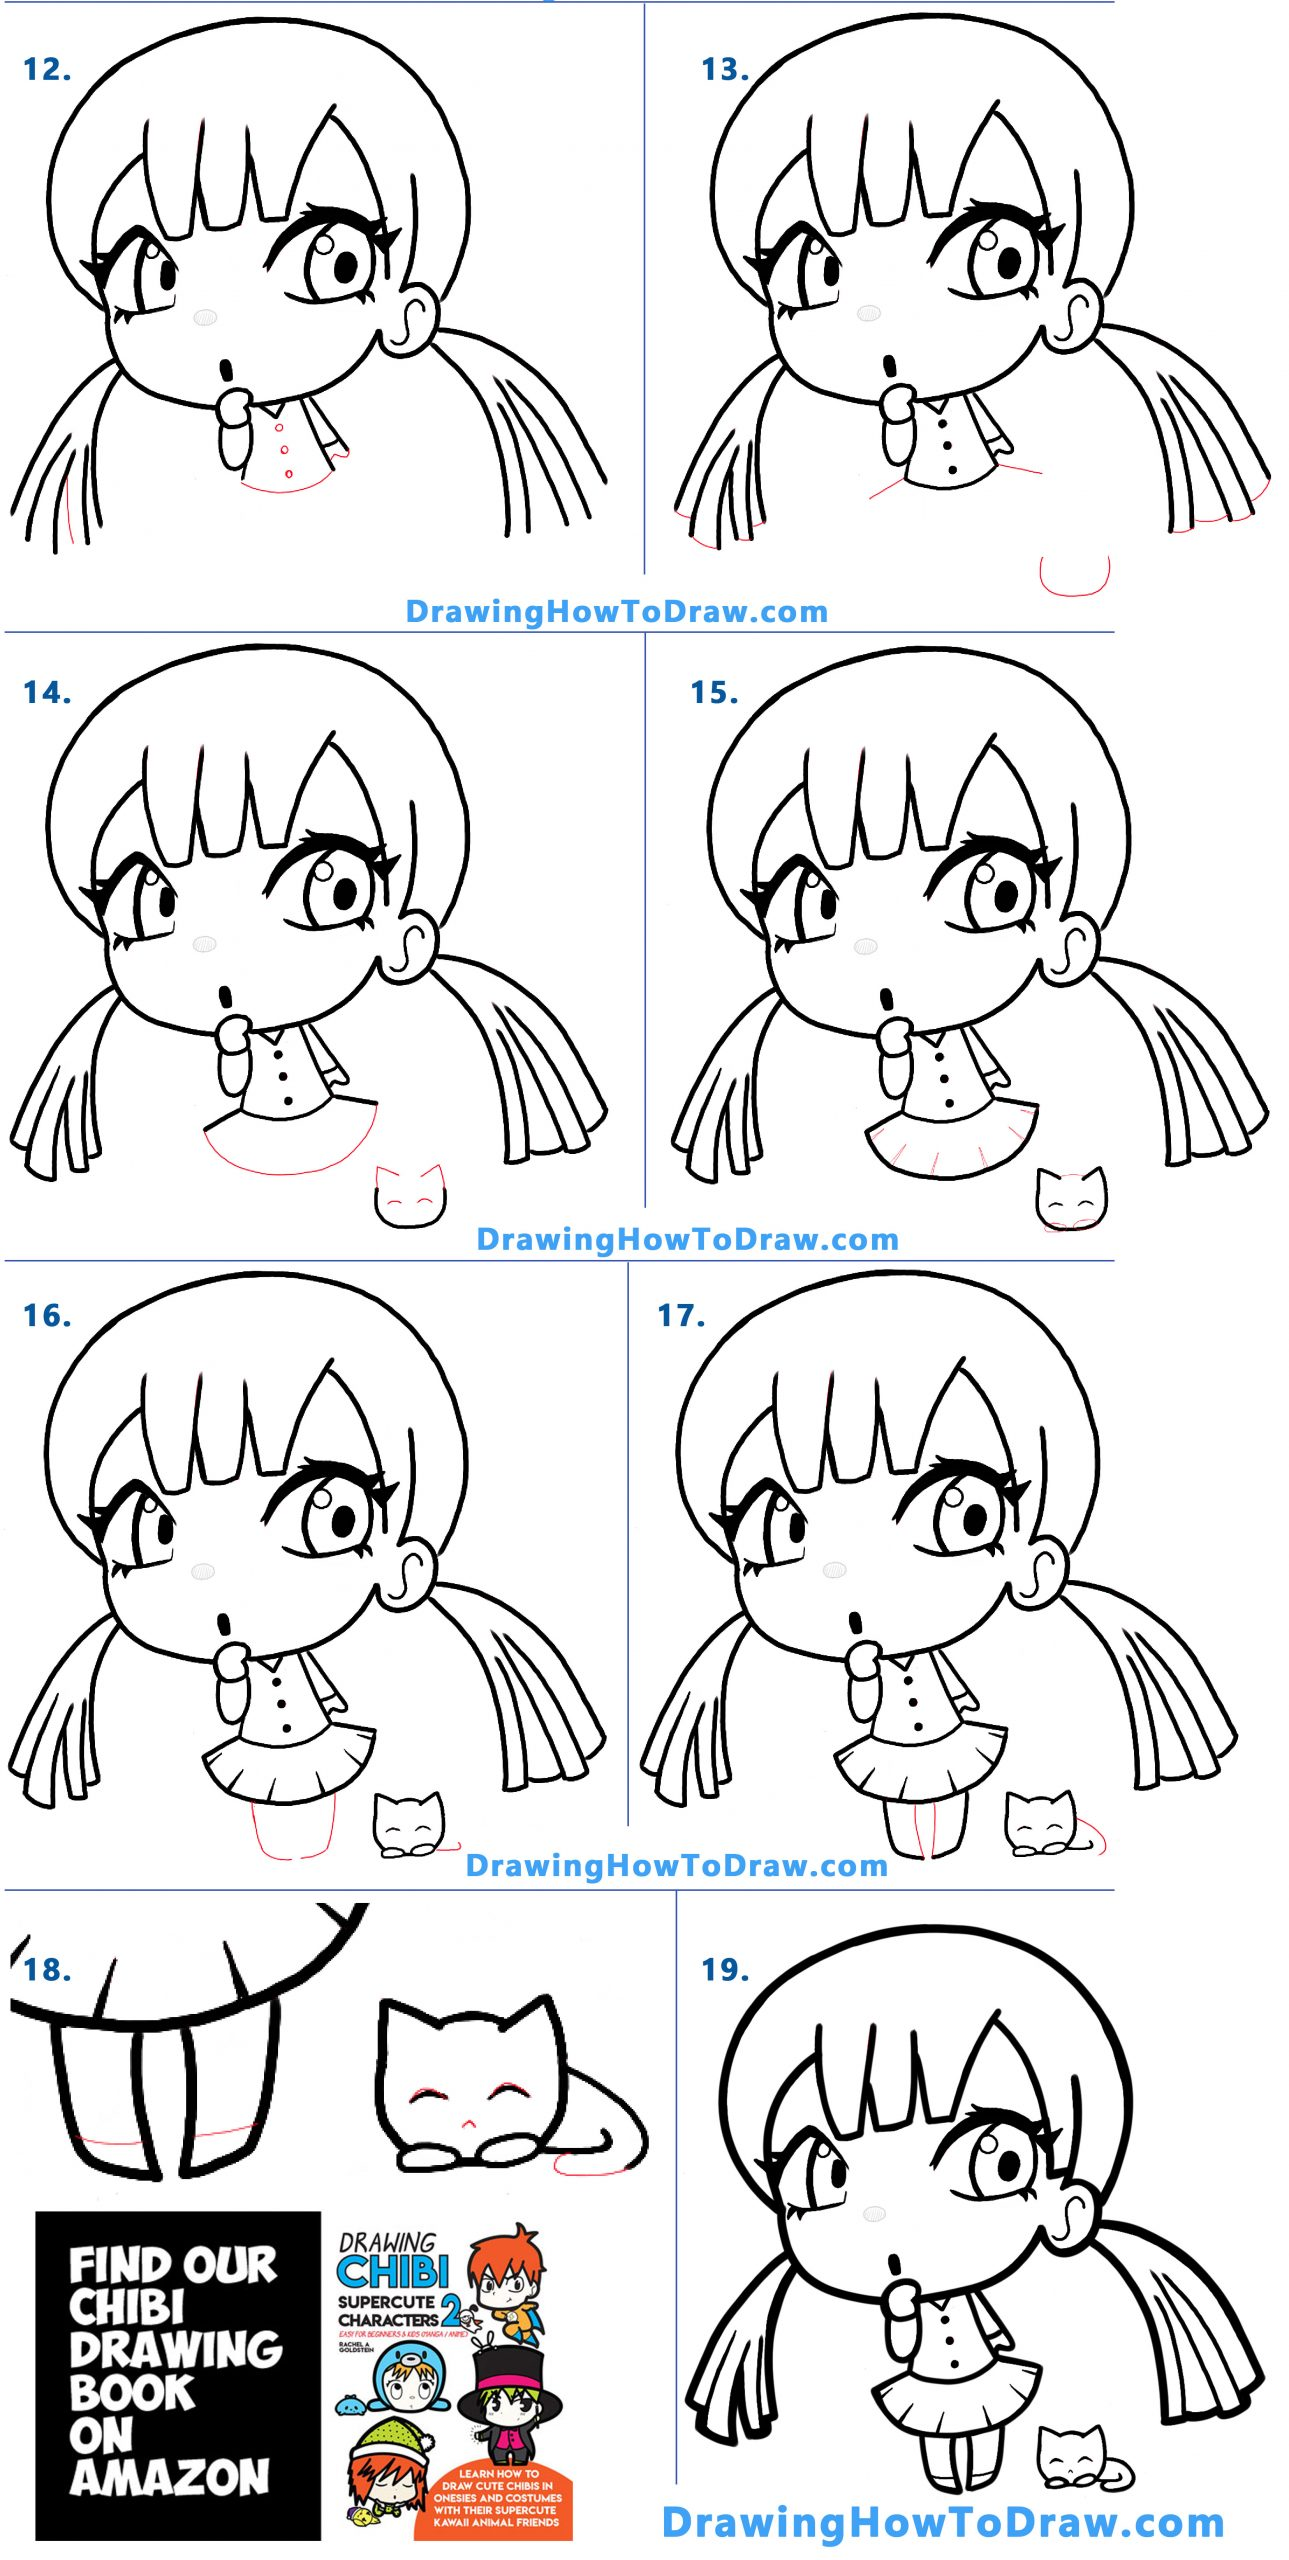 Learn how to draw a cute chibi manga anime girl with her kitten with simple steps drawing lesson for kids and beginners